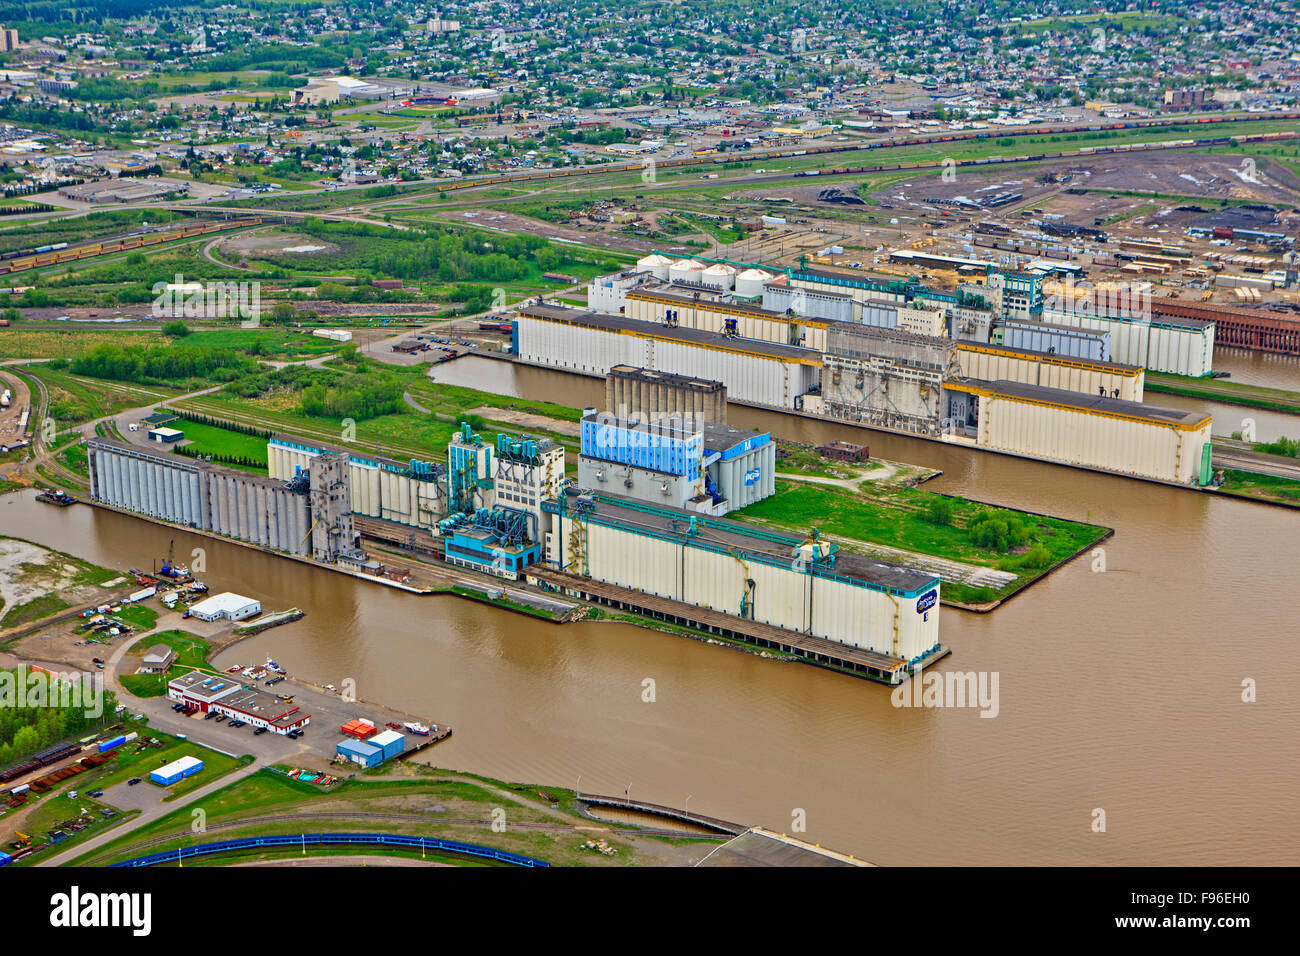 Grain elevators at the ship terminals along the Lake Superior waterfront in the city of Thunder Bay, Ontario, Canada. - Stock Image